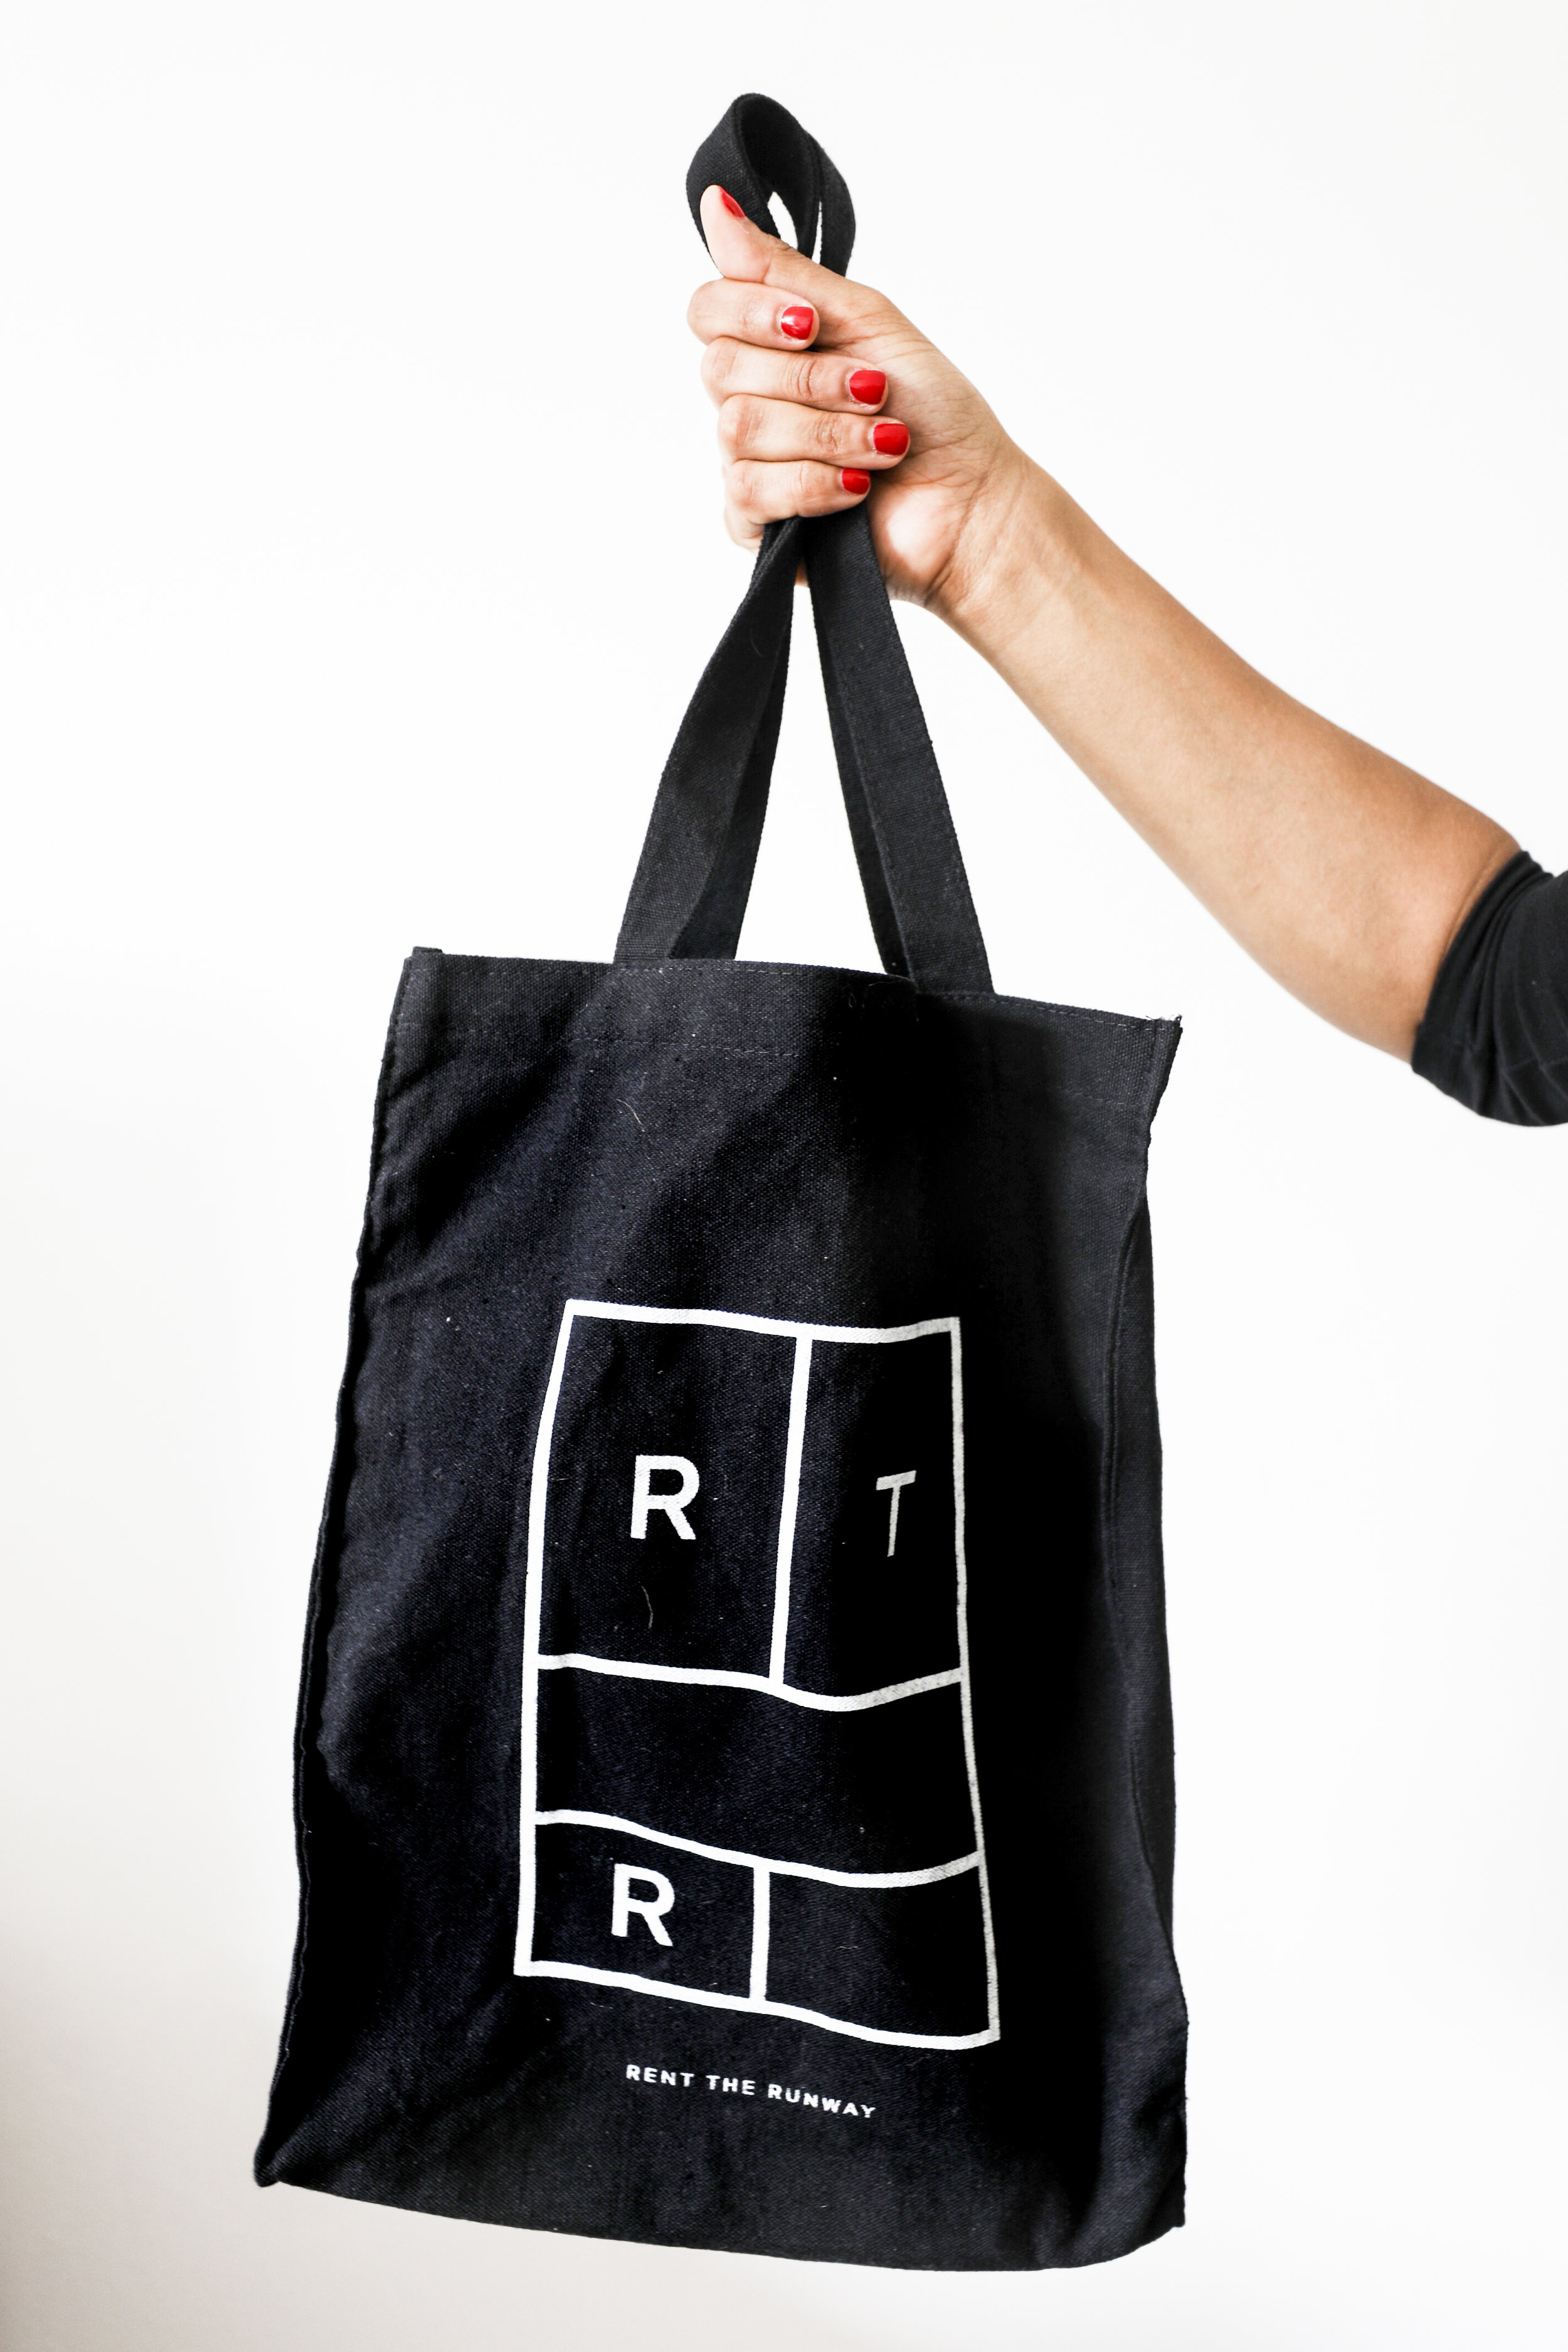 I am an unlimited member at Rent the Runway and they gave me this tote